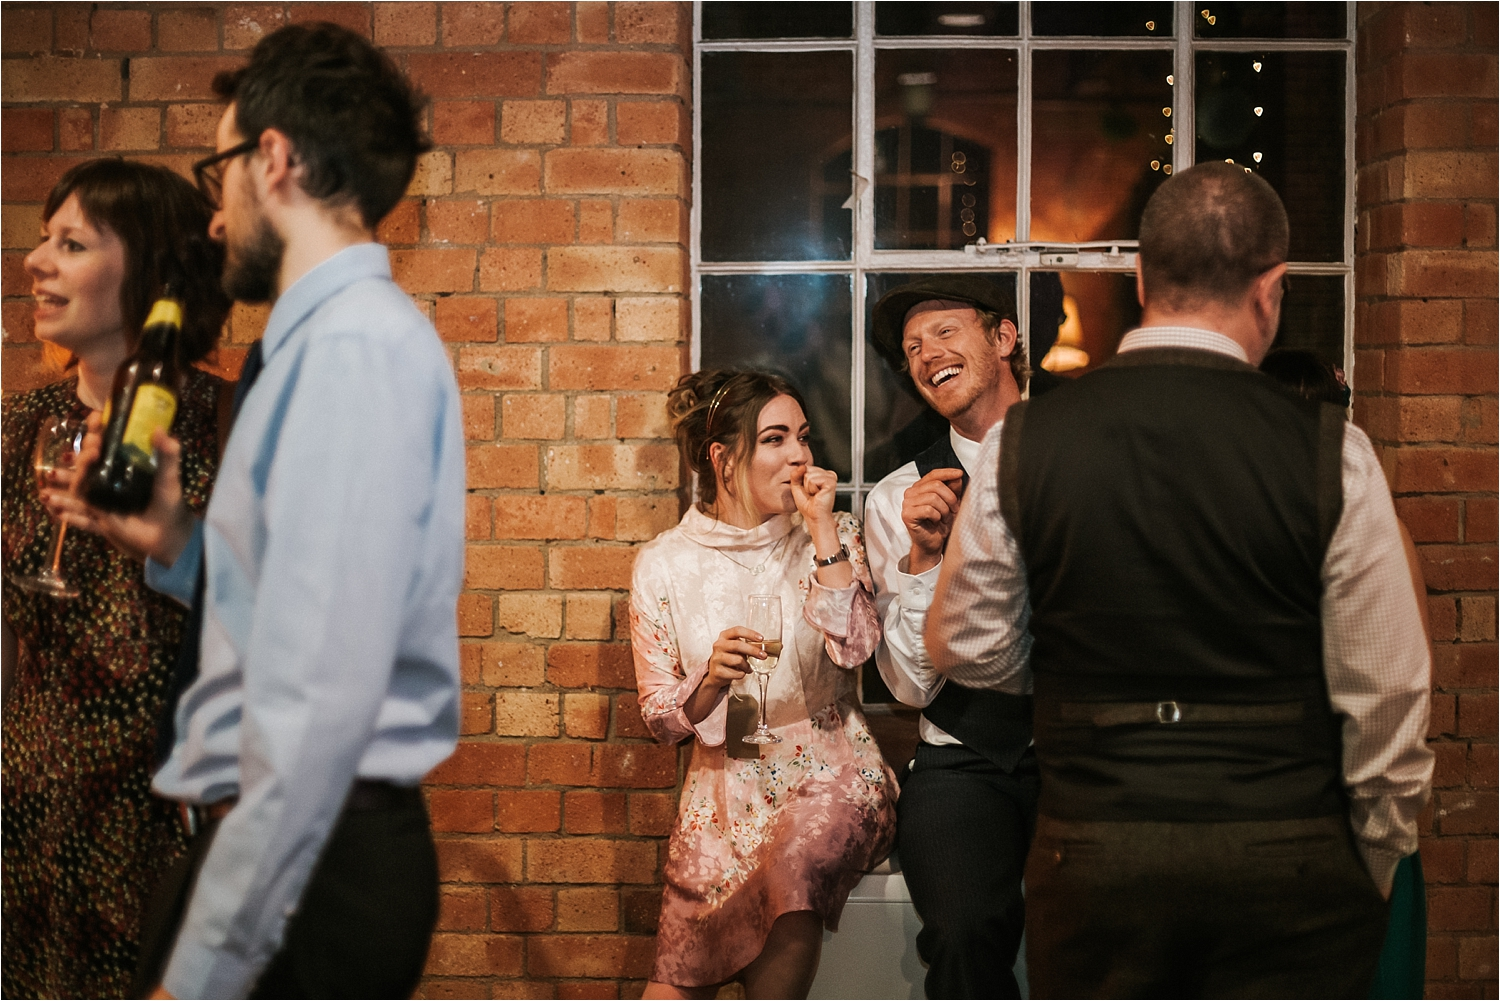 Victoria-Ben-The-West-Mill-darley-abbey-natural-relaxed-documentary-wedding-photography-photographer-Derby-Nottingham-Derbyshire-Nottinghamshire-Leicestershire-Lincolnshire-East-Midlands_0178.jpg